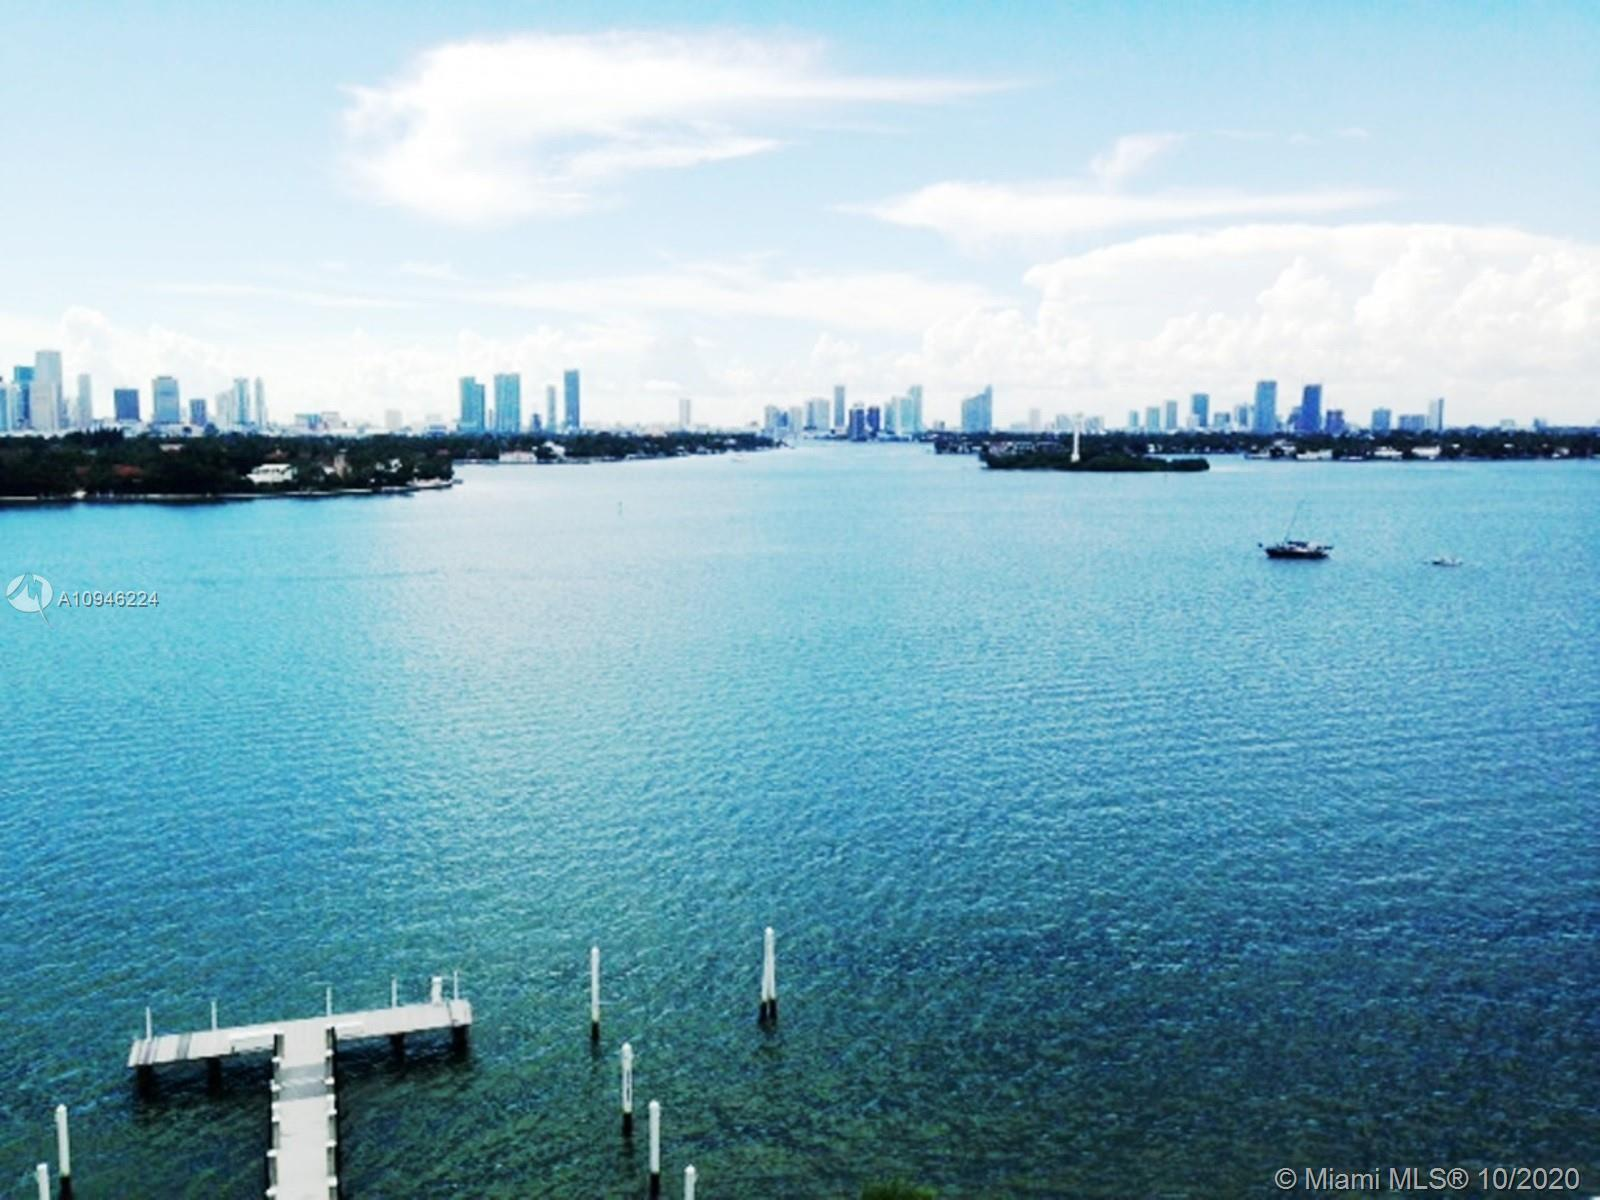 Breathtaking Direct Bay View & Miami's Skyline. 1 /1 unit with assigned parking space #206,valued at